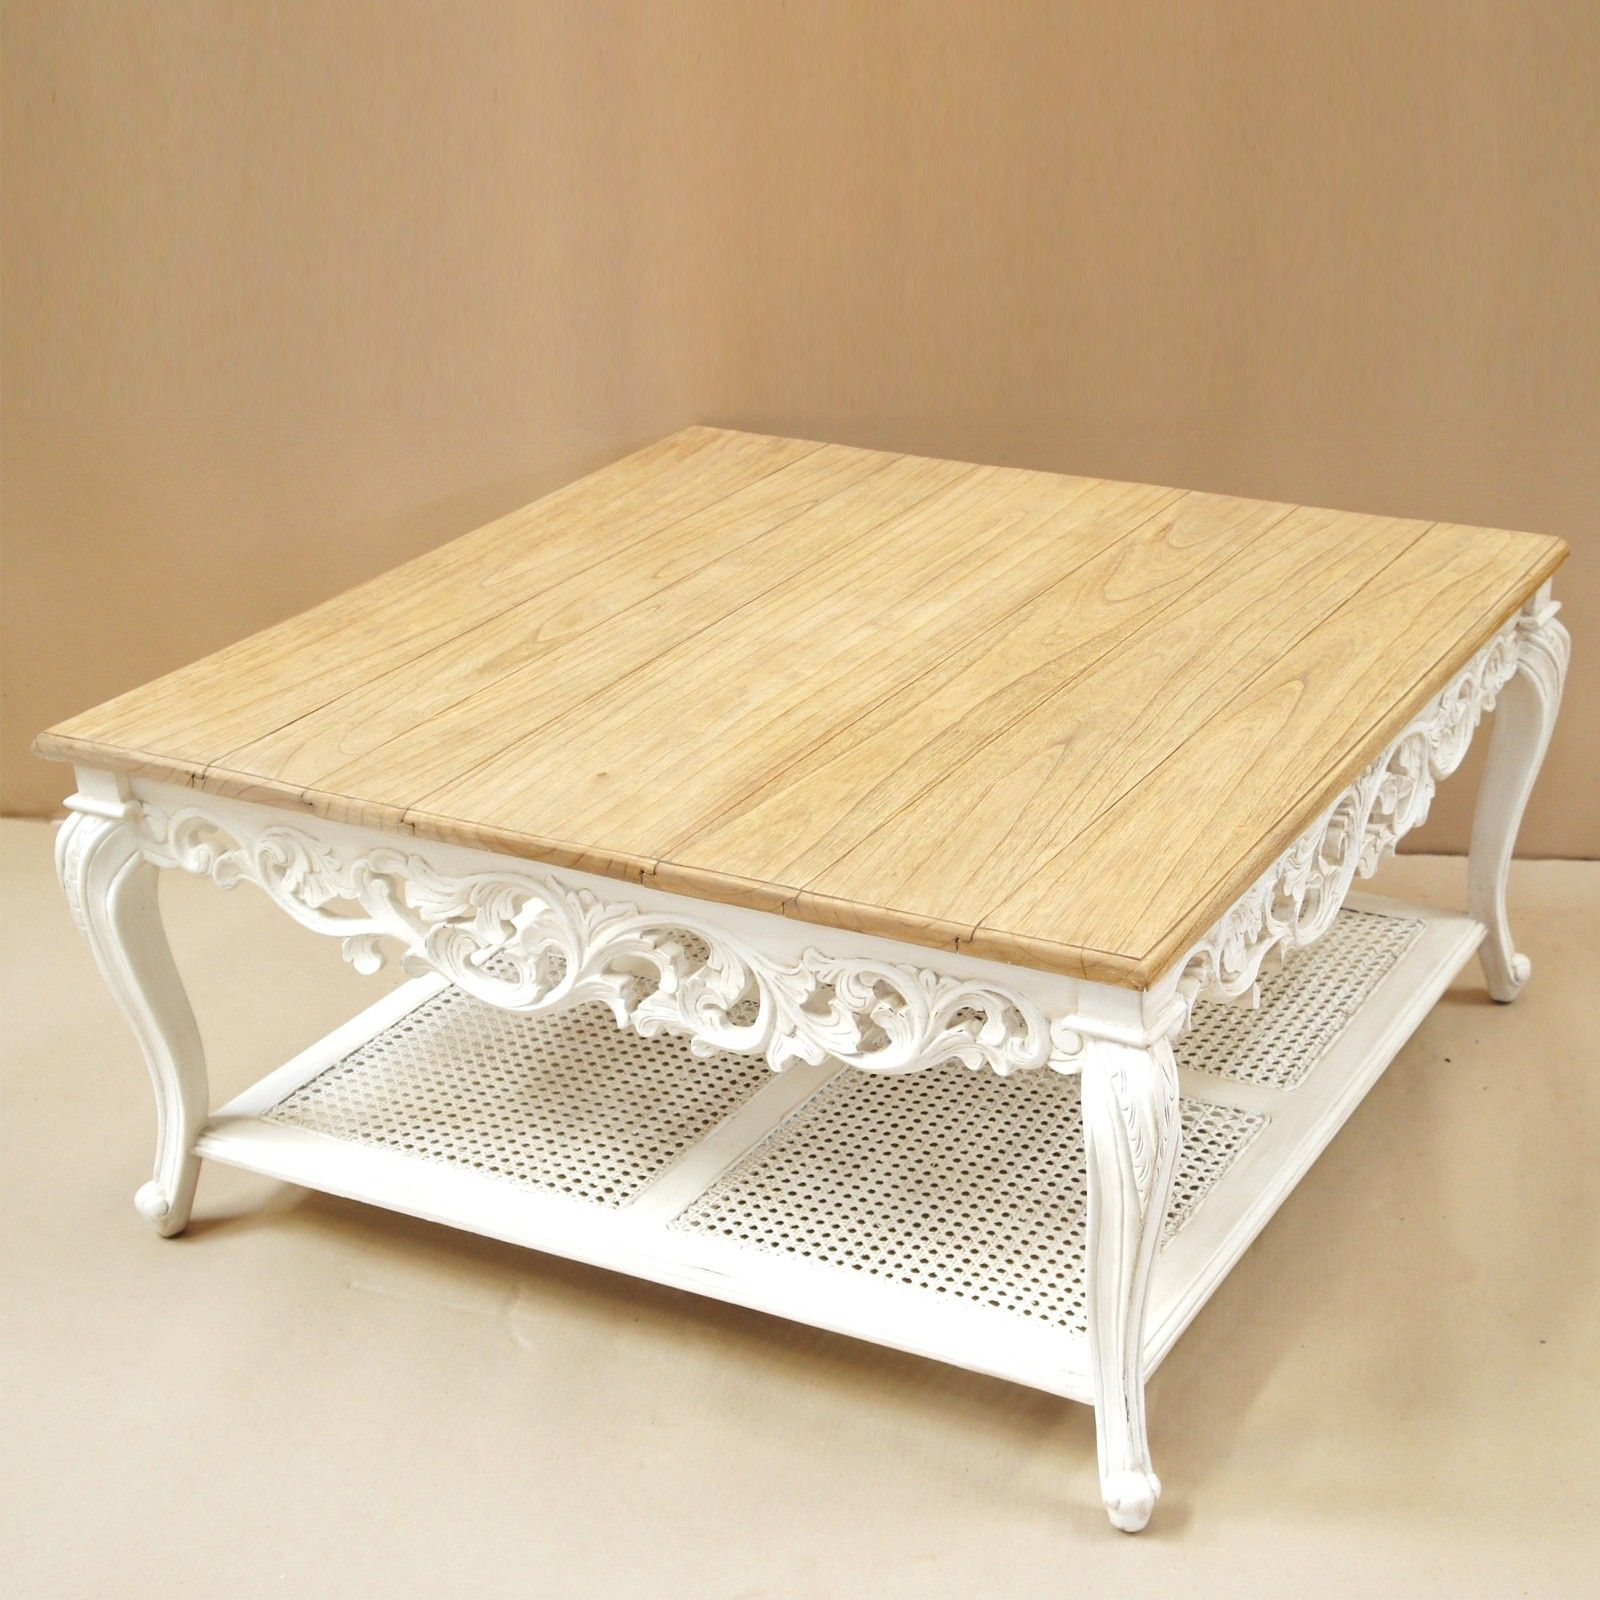 a81daa7976a9b74ebe116ac064bf4cb9 Frais De Table Basse Blanche Rectangulaire